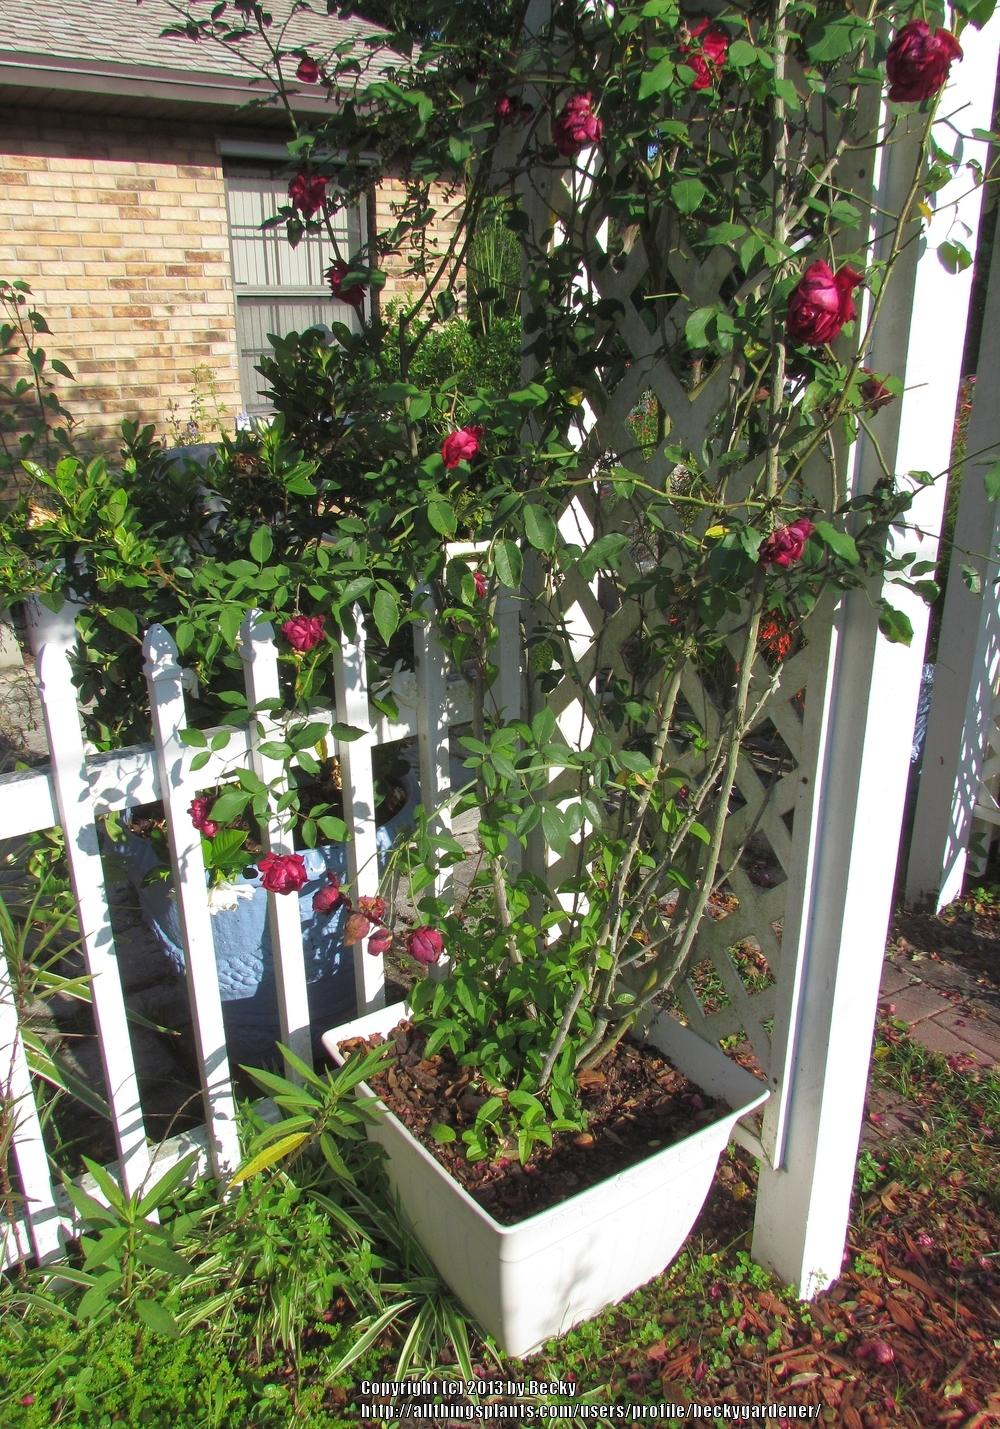 Zephirine Drouhin Climbing Rose training climbing roses: thank you for the ideas on training